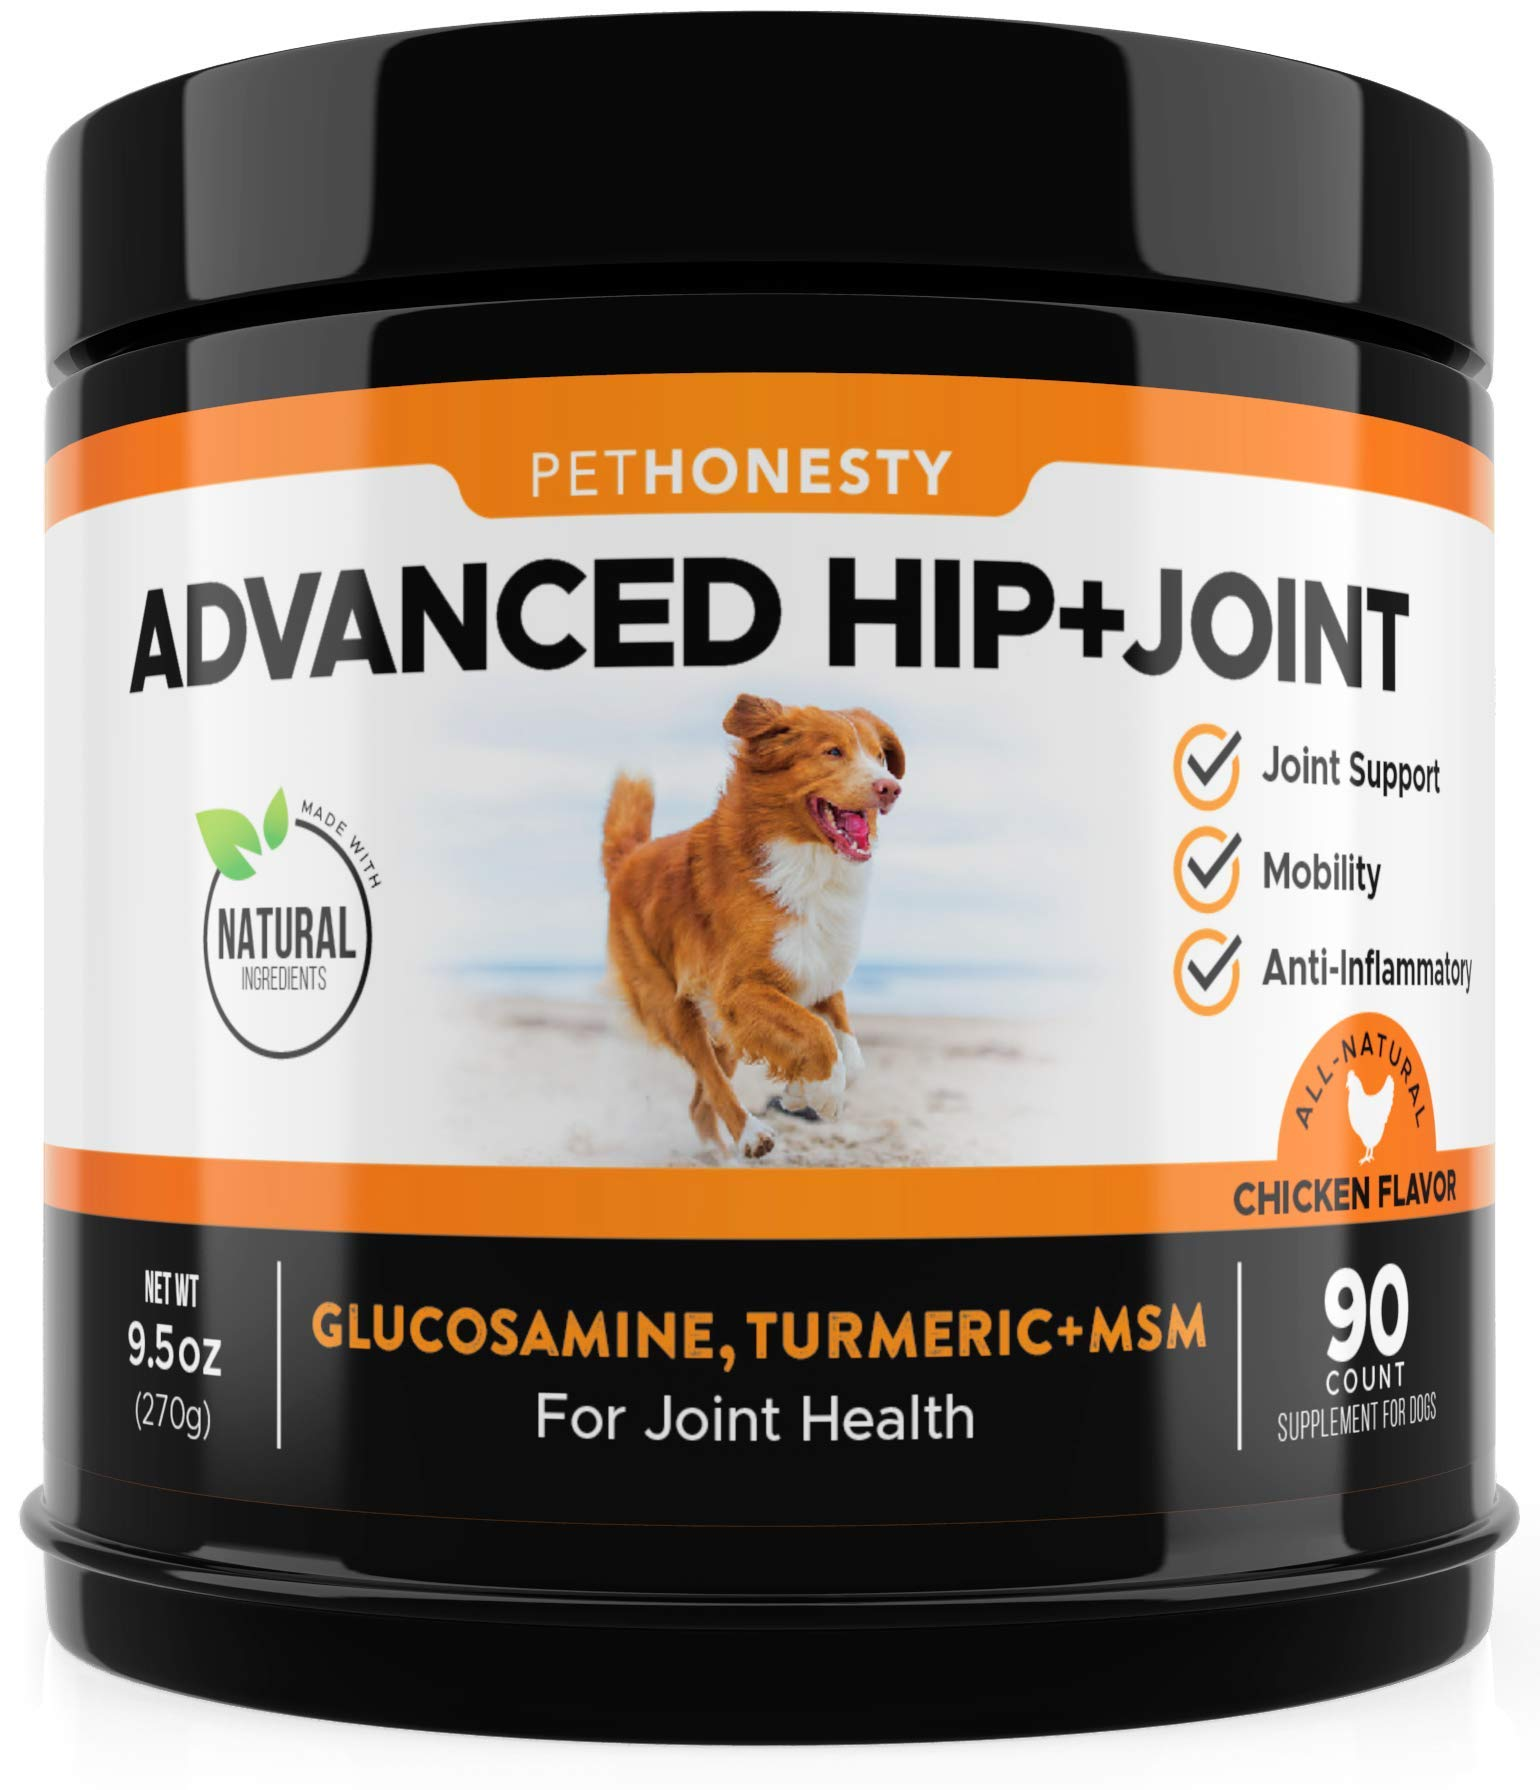 Glucosamine for Dogs - Dog Joint Supplement Support for Dogs with glucosamine Chondroitin, MSM, Turmeric - Advanced Hip and Joint Support for Dogs Chews and Pet Joint Pain Relief - 90 ct by PetHonesty